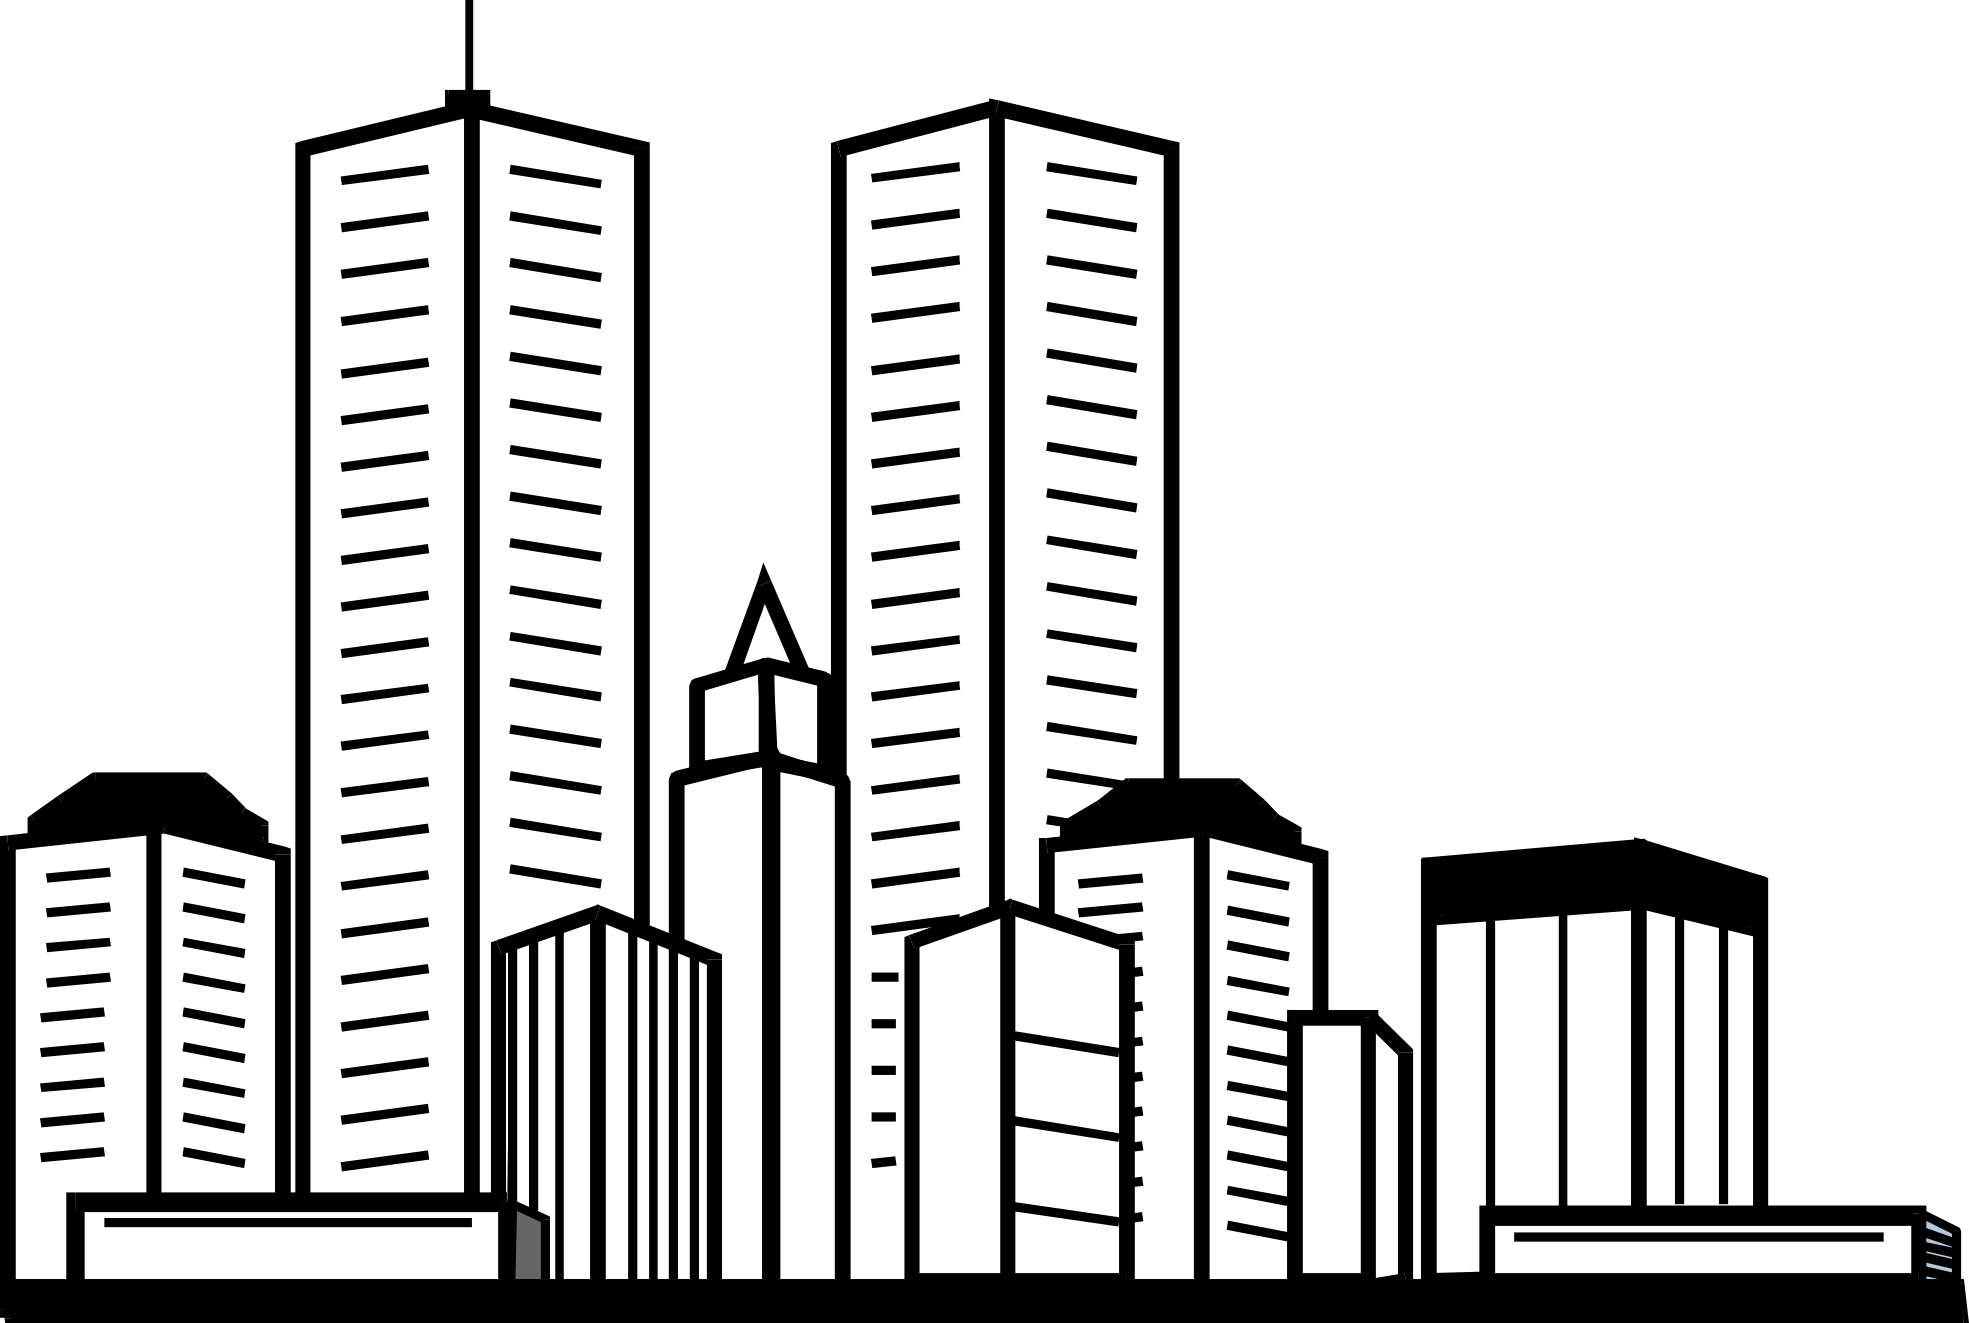 Skyscraper clipart skyline building Drawings Download Skyscraper svg Skyscraper